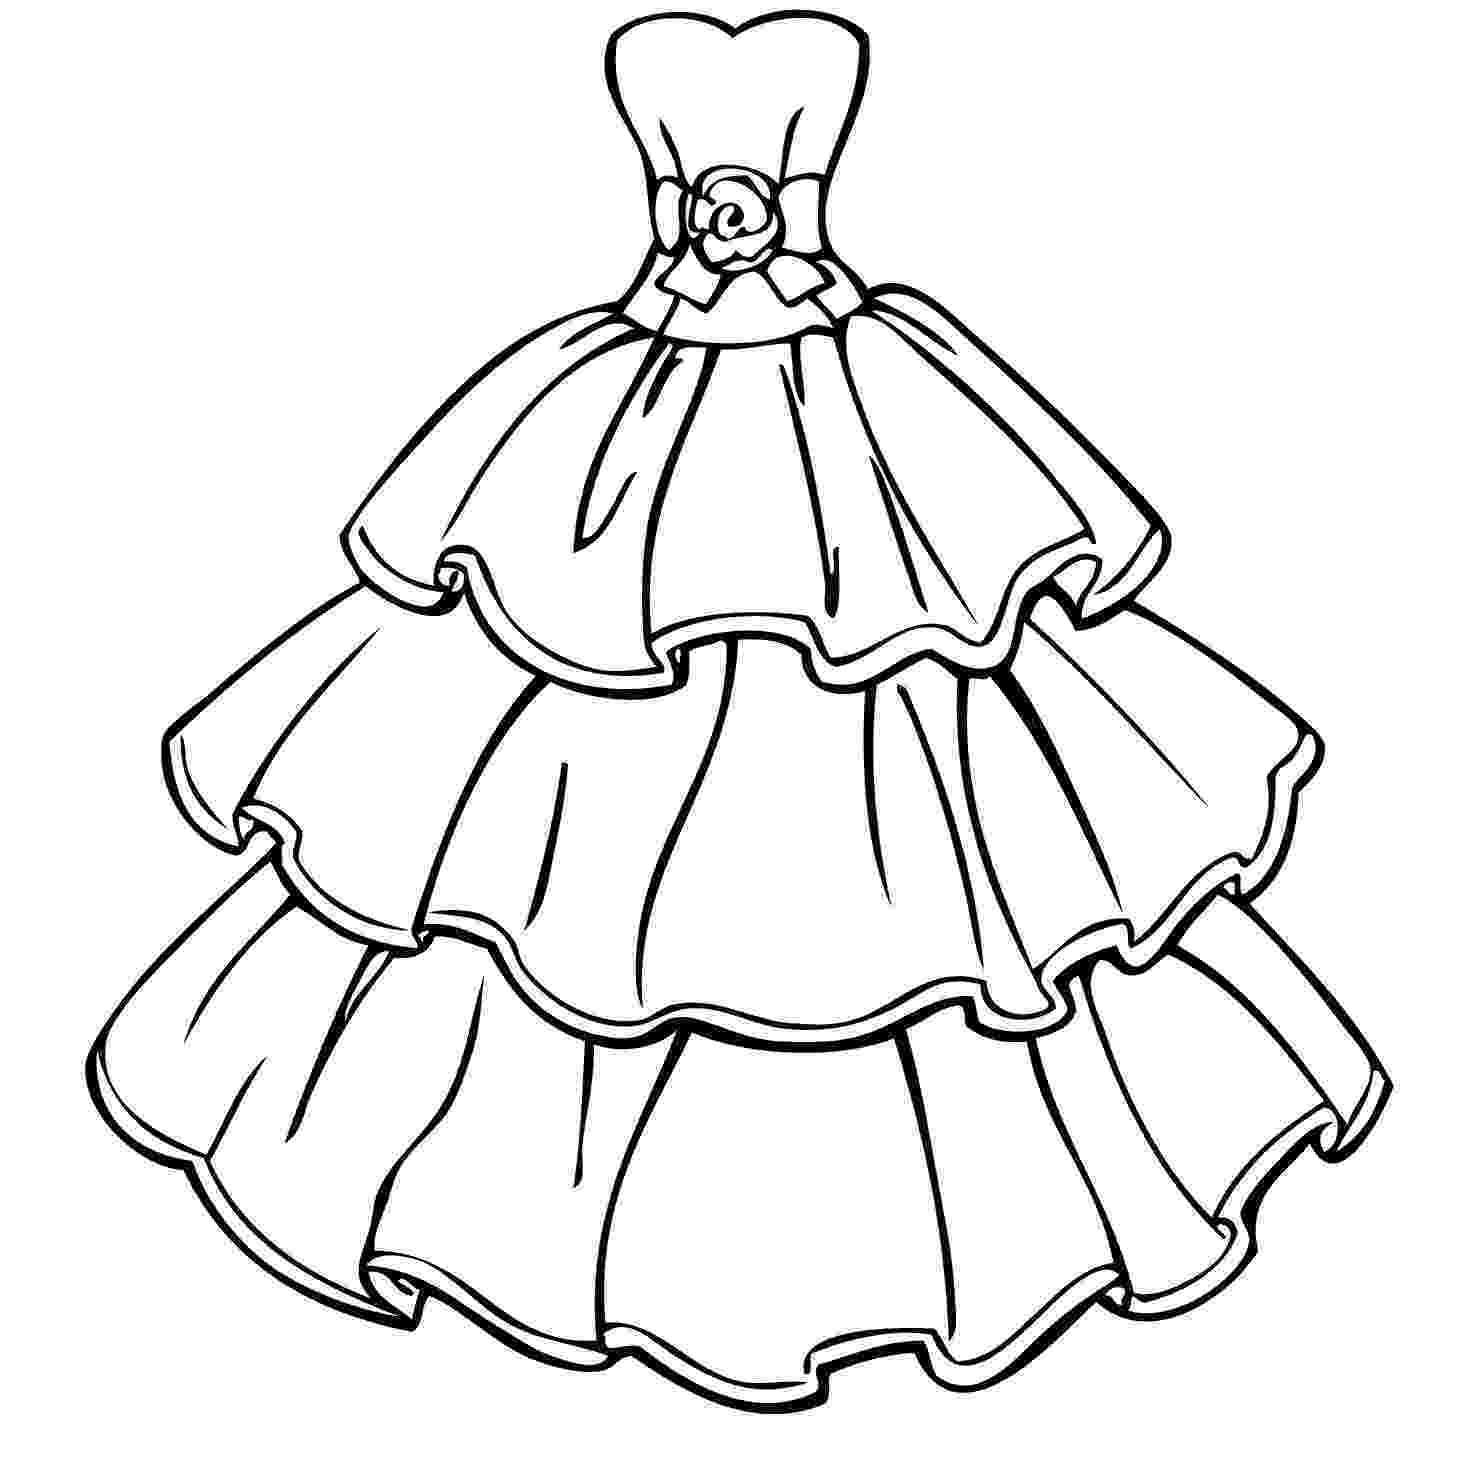 dress colouring pages dress coloring pages to download and print for free dress colouring pages